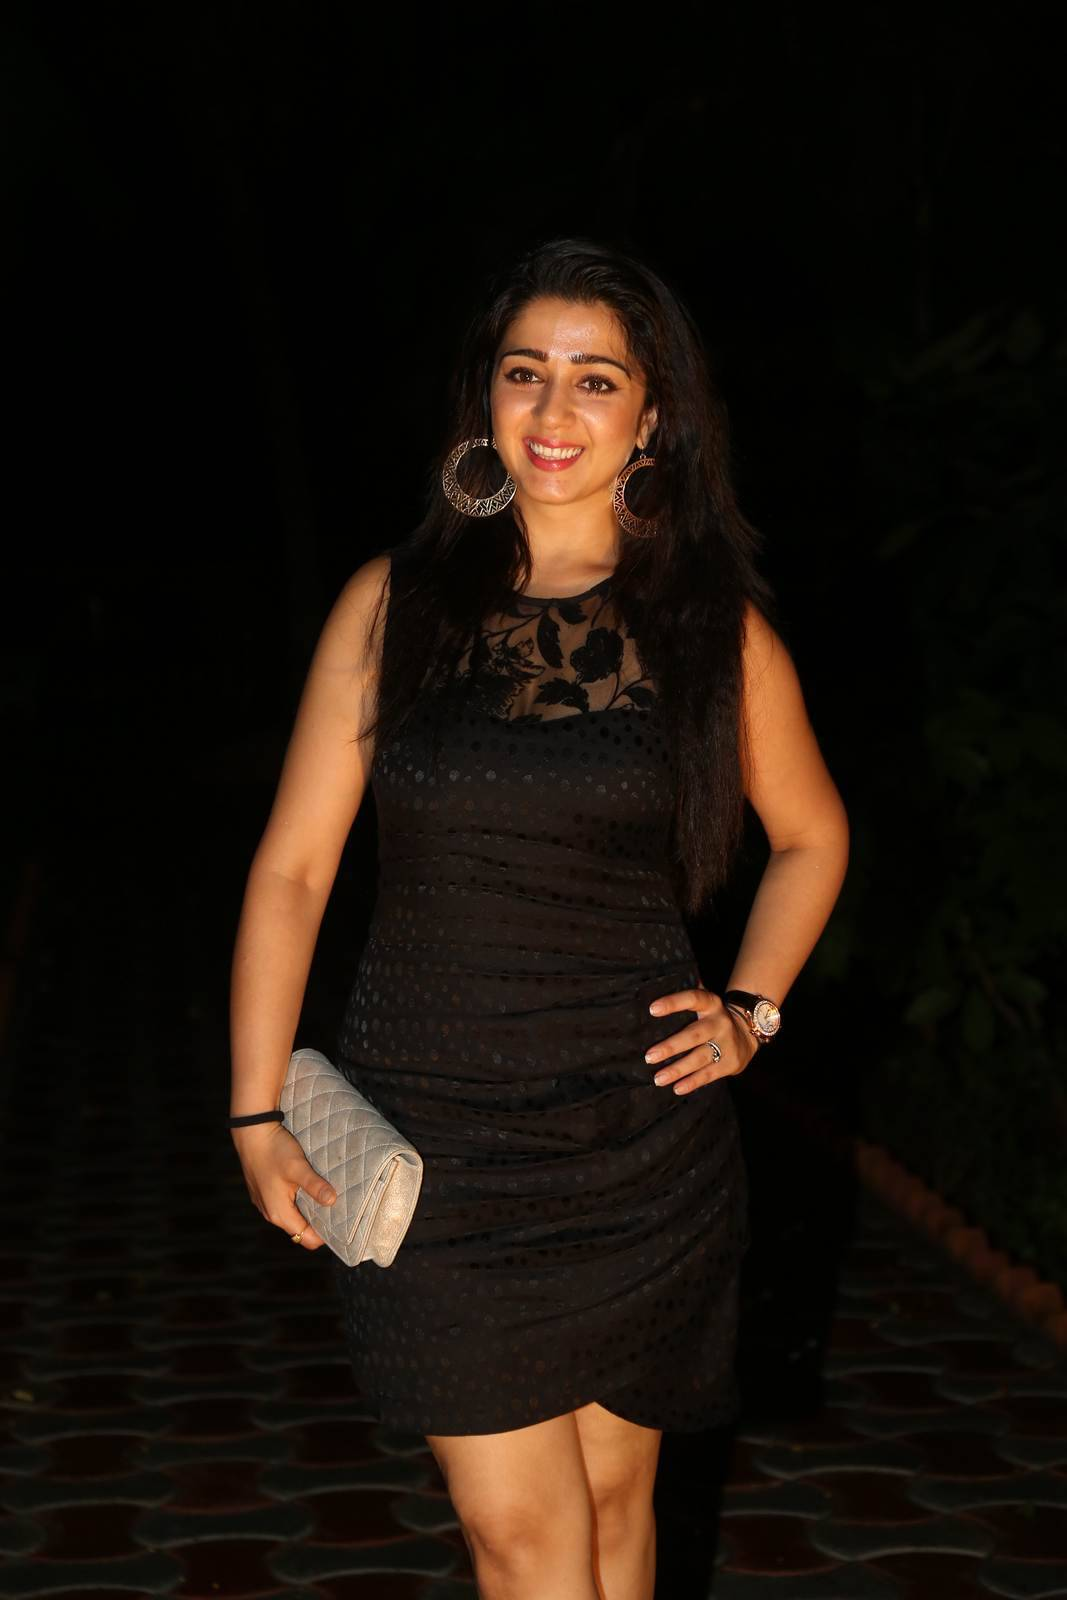 Telugu Actress Charmee, Charmee Kaur Pics Clicked in Black Dress at Event